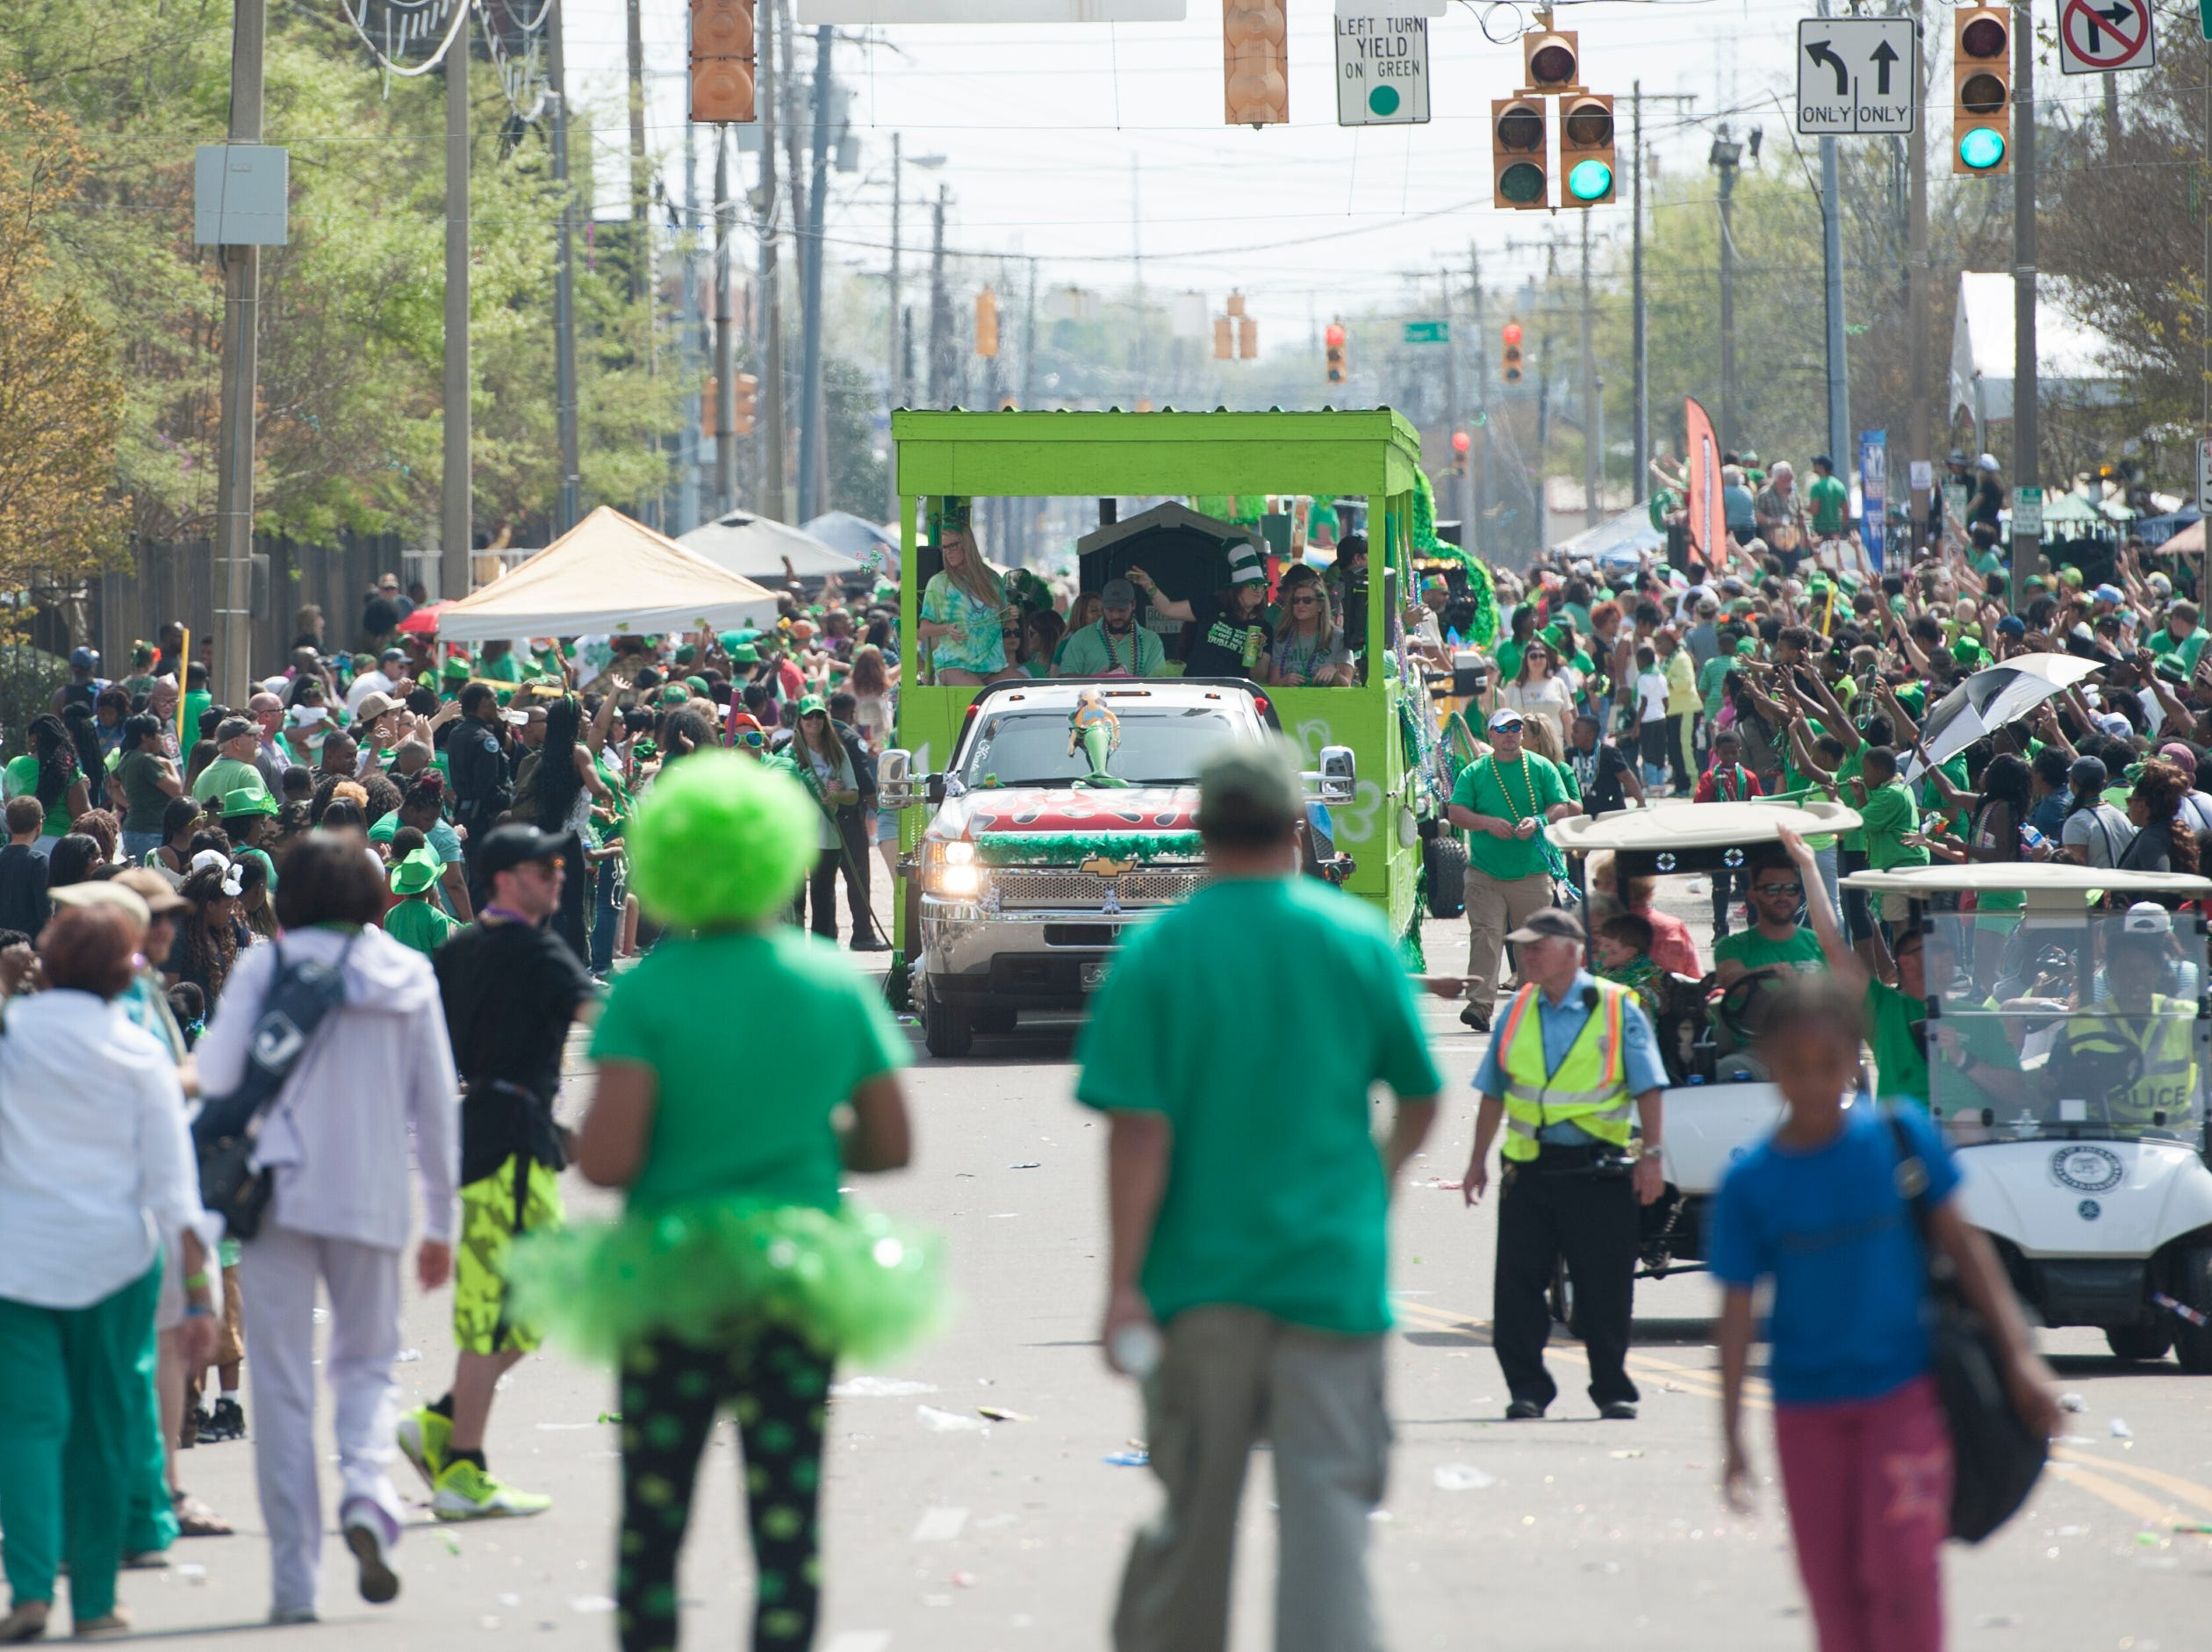 Authorities get the crowd back as they encroach on the parade route along West Street Saturday, March, 23, 2019. Hal's St. Paddy's Day Parade participants met an enthusiastic crown along the downtown route.